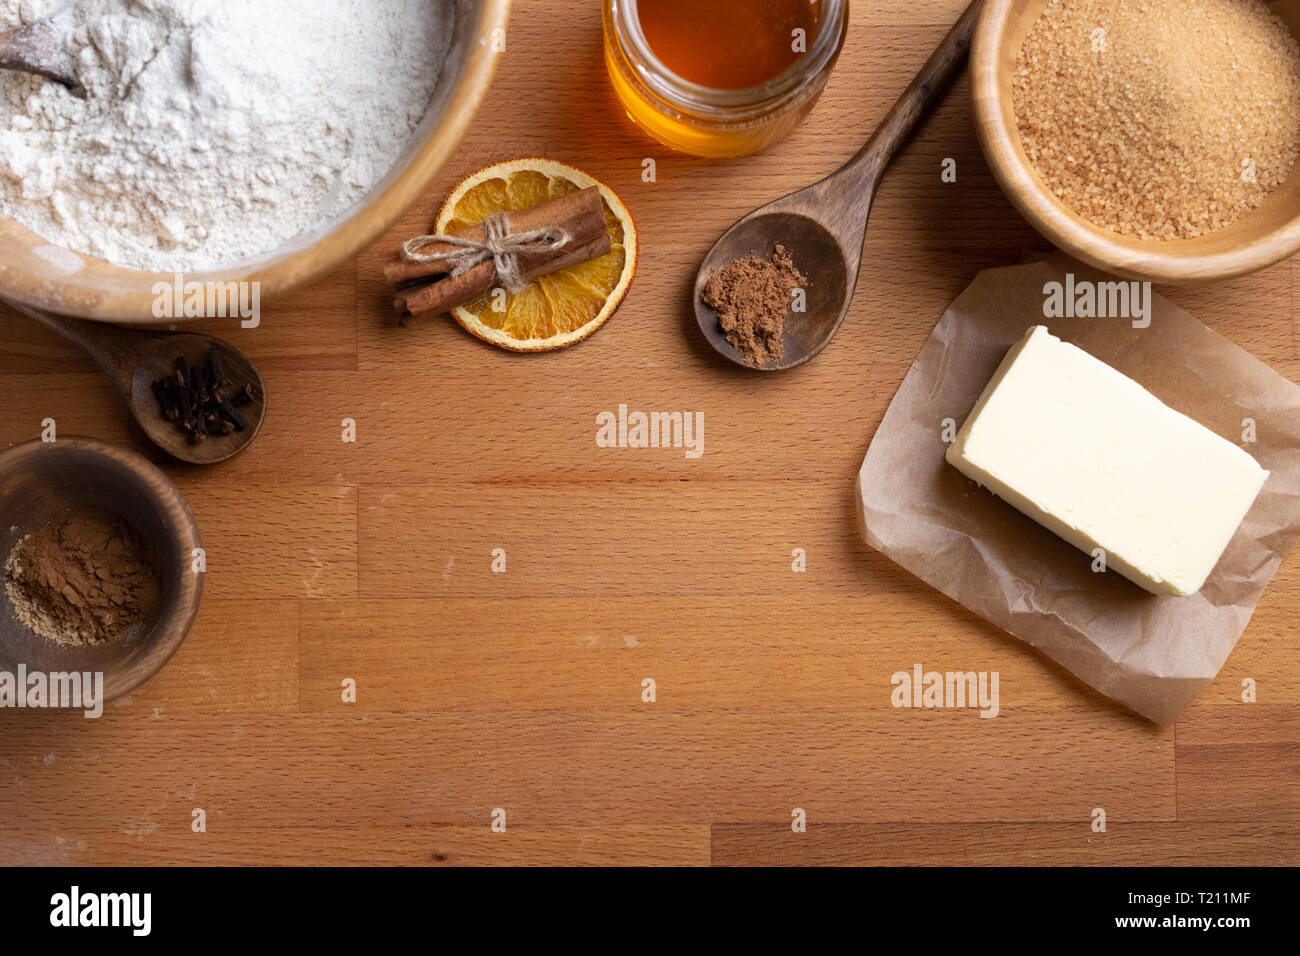 Top view of food ingredients with copy space for recipe. Flour, butter, sugar, spices. new year concept. - Stock Image